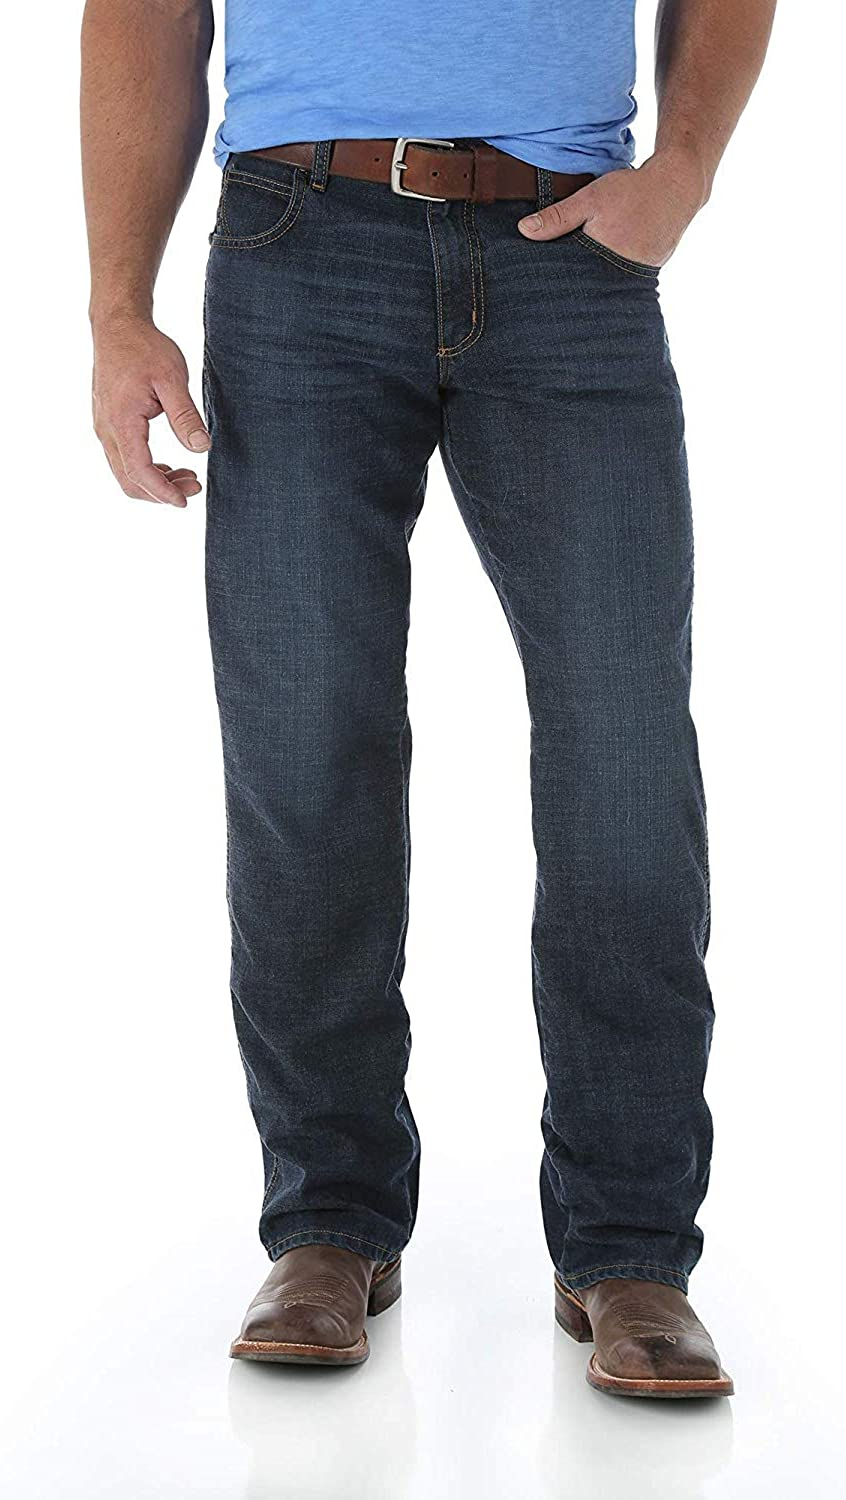 Wrangler Men's Retro Relaxed Fit Cut Max 50% OFF Boot Jean Tampa Mall